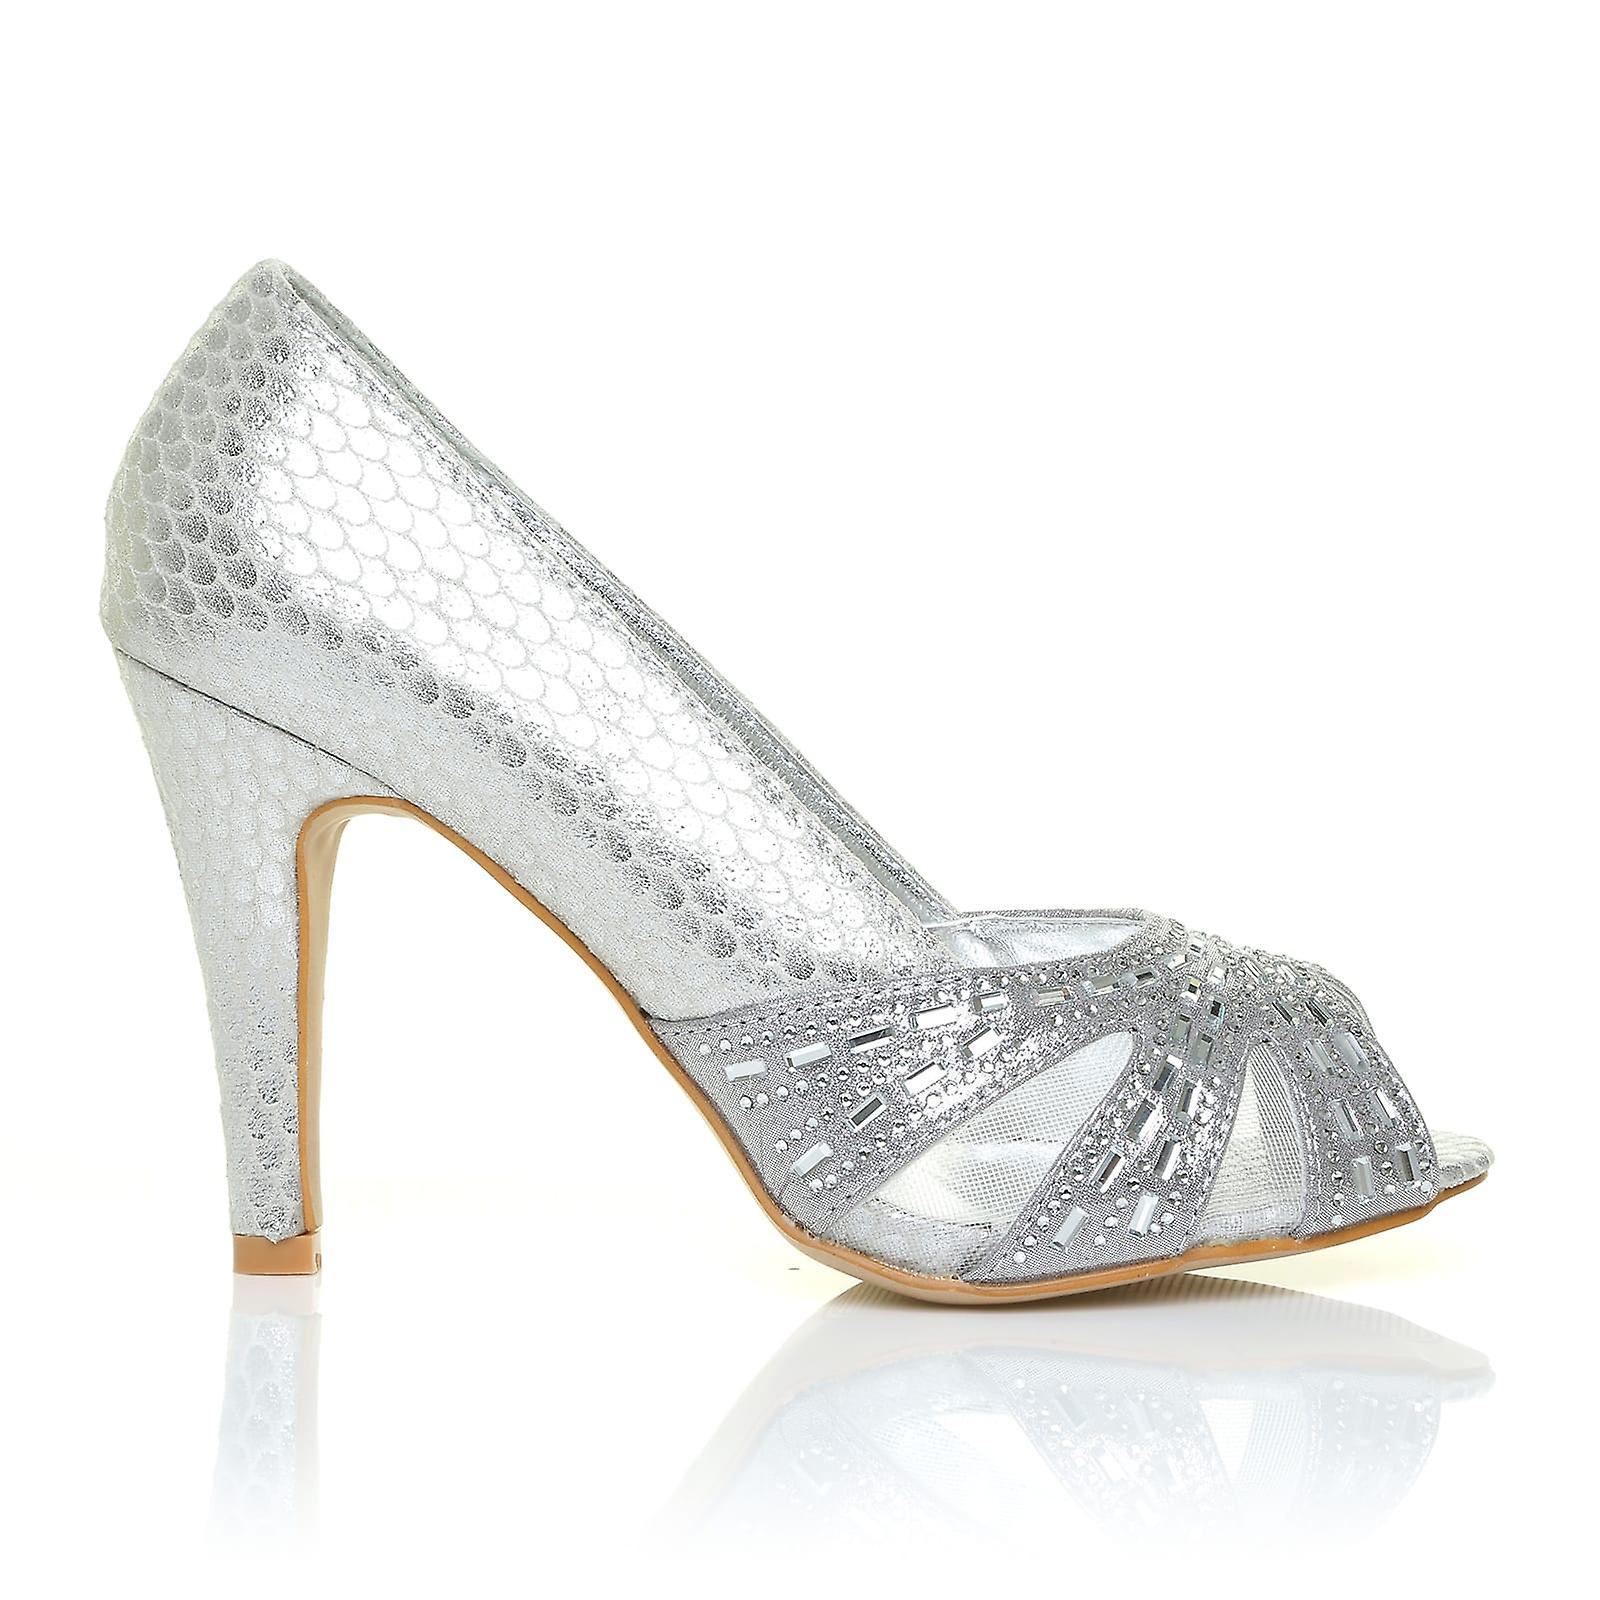 HOLLY Silver Snake Party Peep Toe High Heel Party Snake Prom Wedding Shoes 228edf